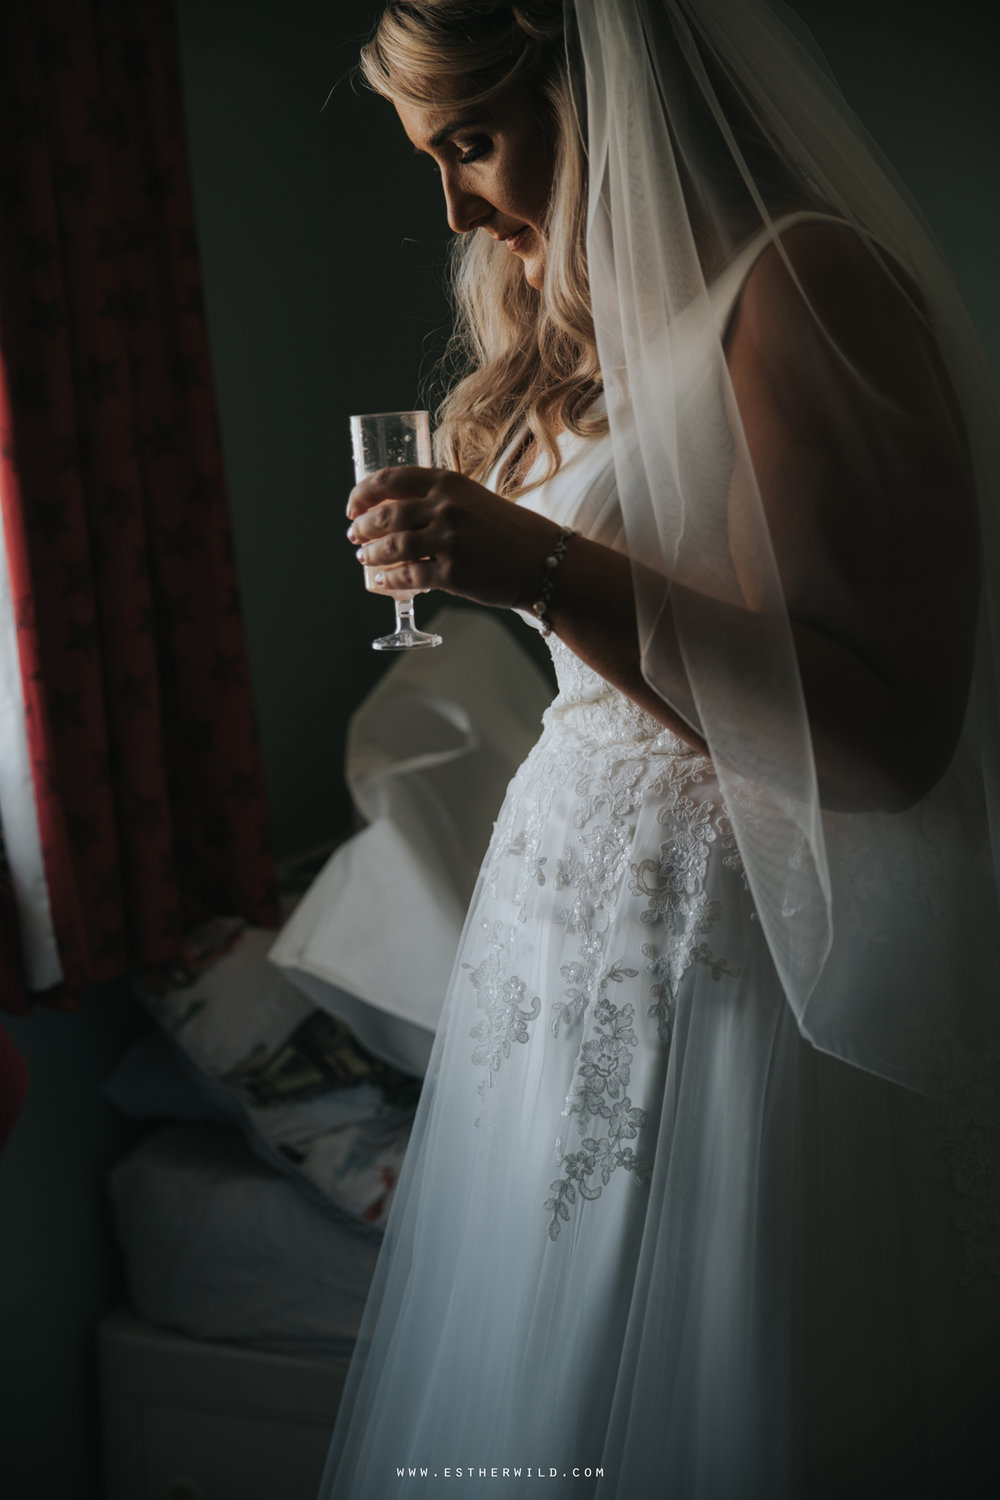 Swaffham_Wedding_Castle_Acre_Norfolk_Esther_Wild_Photographer_Wedding_Photography_3R8A0278.jpg